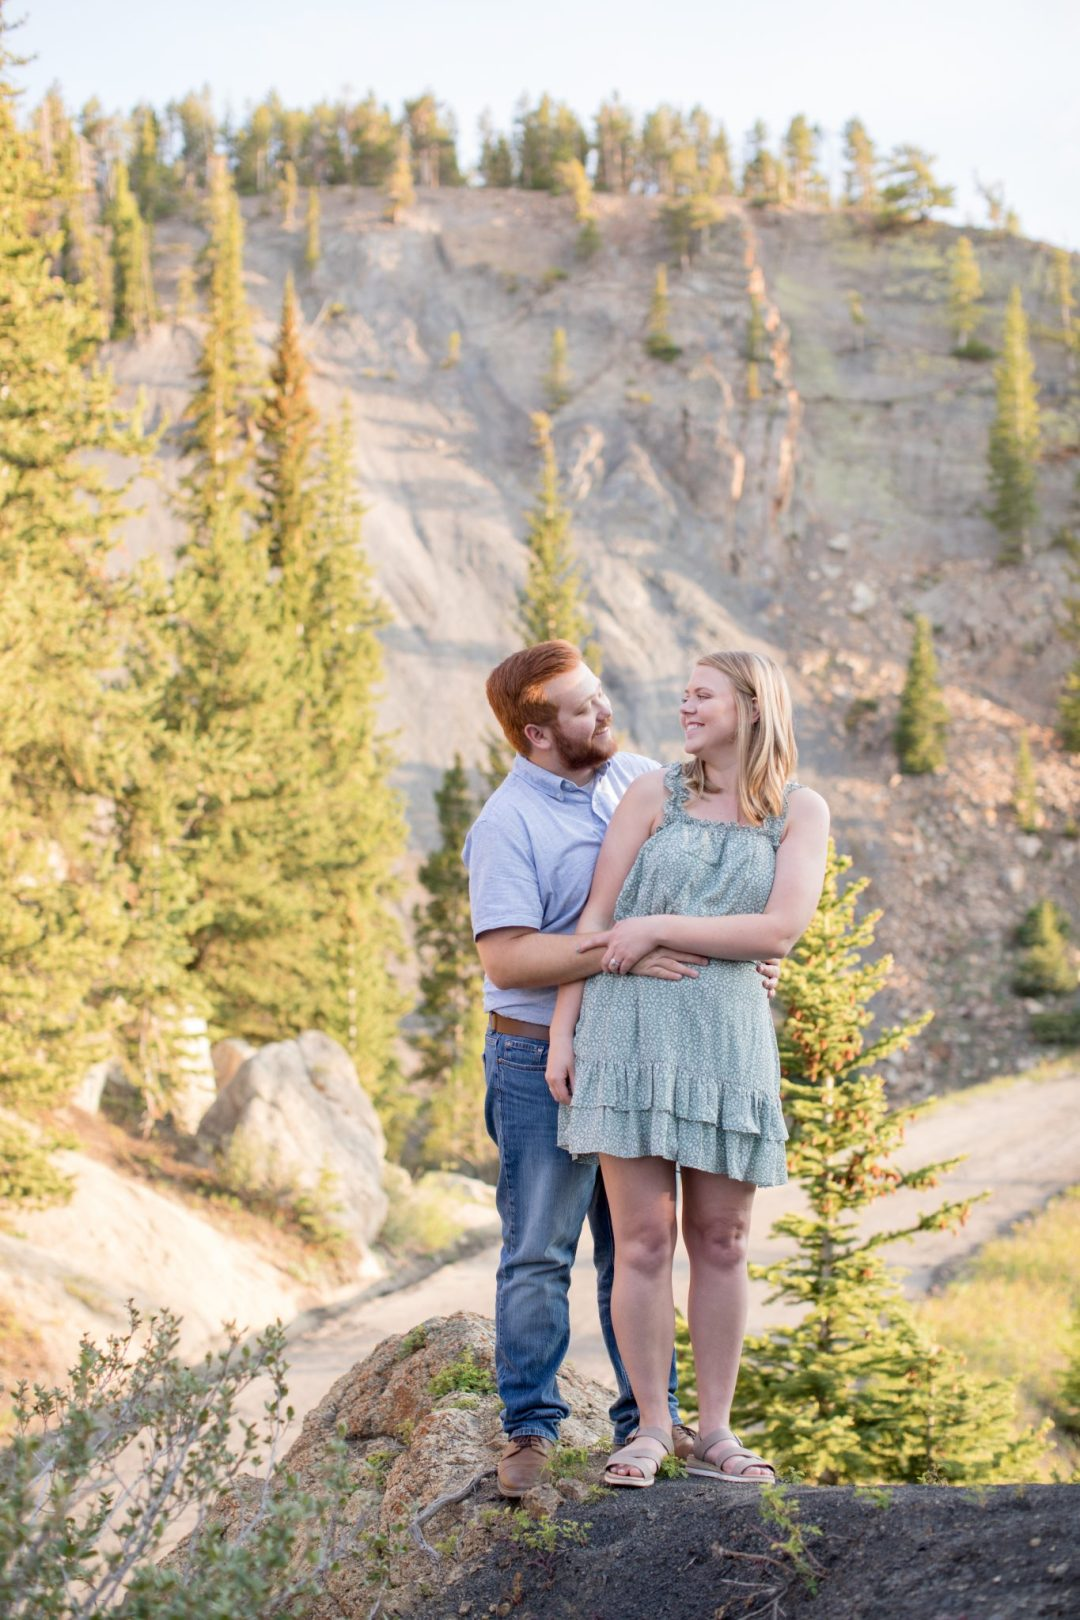 Breckenridge Engagement Photography Session with a Mountain Backdrop